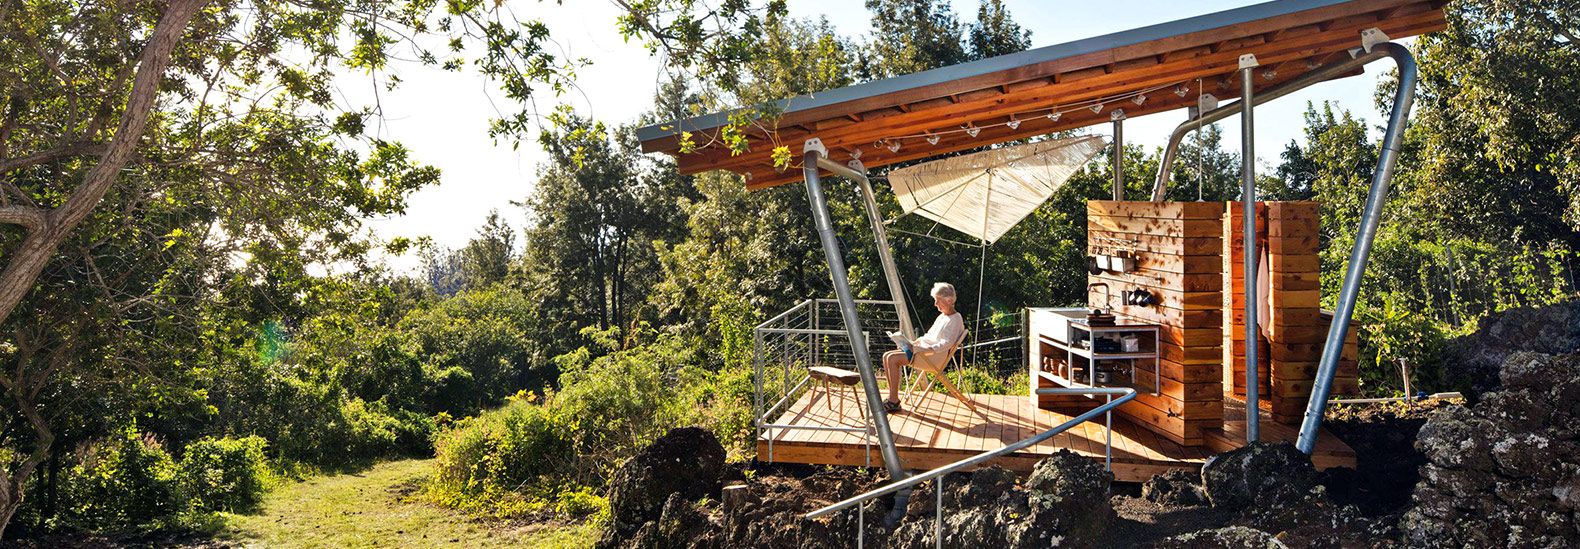 Low Impact U0027Outside Houseu0027 Is Built On An Old Lava Flow In The Mountains Of  Maui